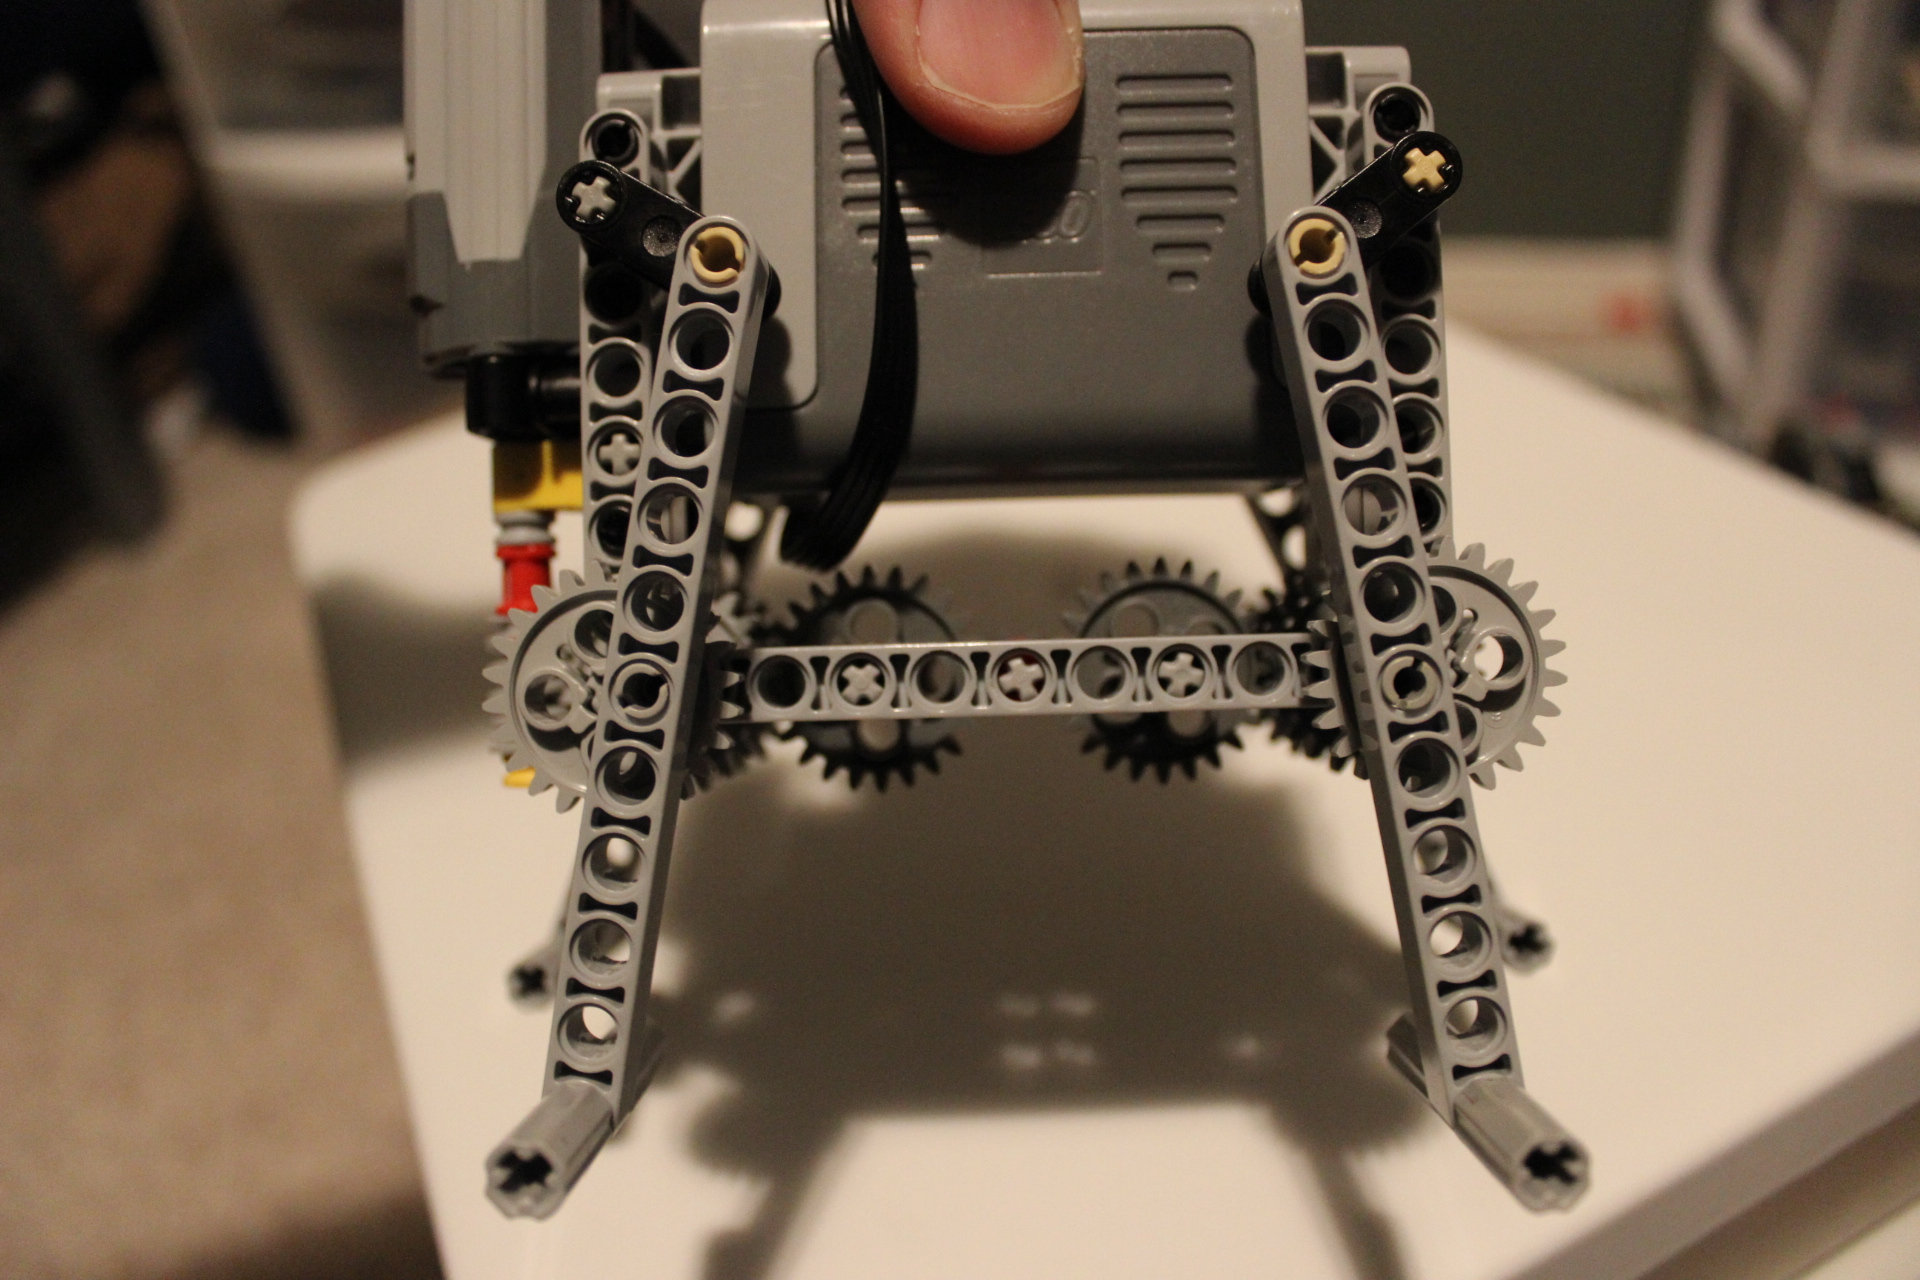 Basic Four-leg LEGO Walker - close